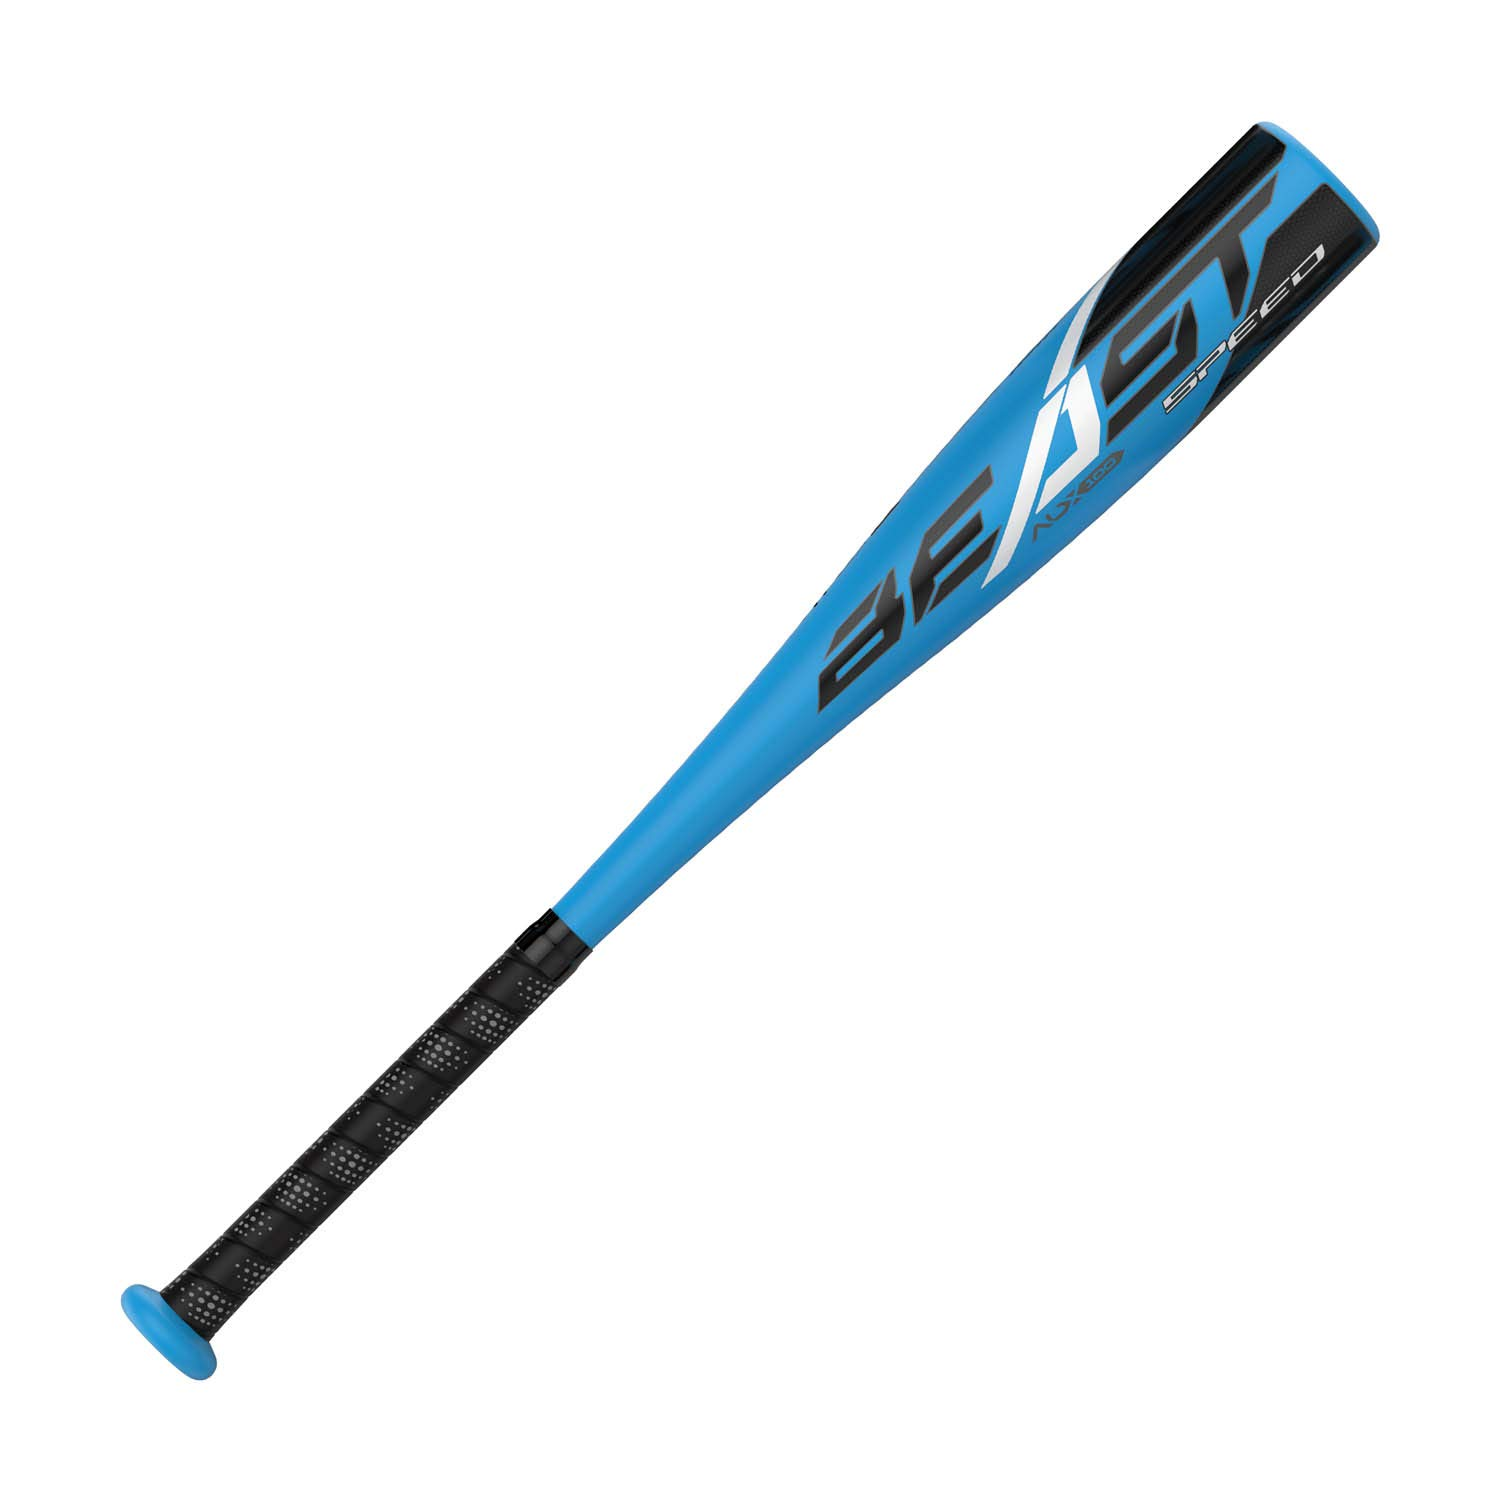 EASTON Beast Speed -11 (2 5/8'') USA Youth / Kids Tee Ball Baseball Bat | 25 inch / 14 oz | 2019 | 1 Piece Aluminum | ALX100 Alloy | Comfort Grip by Easton